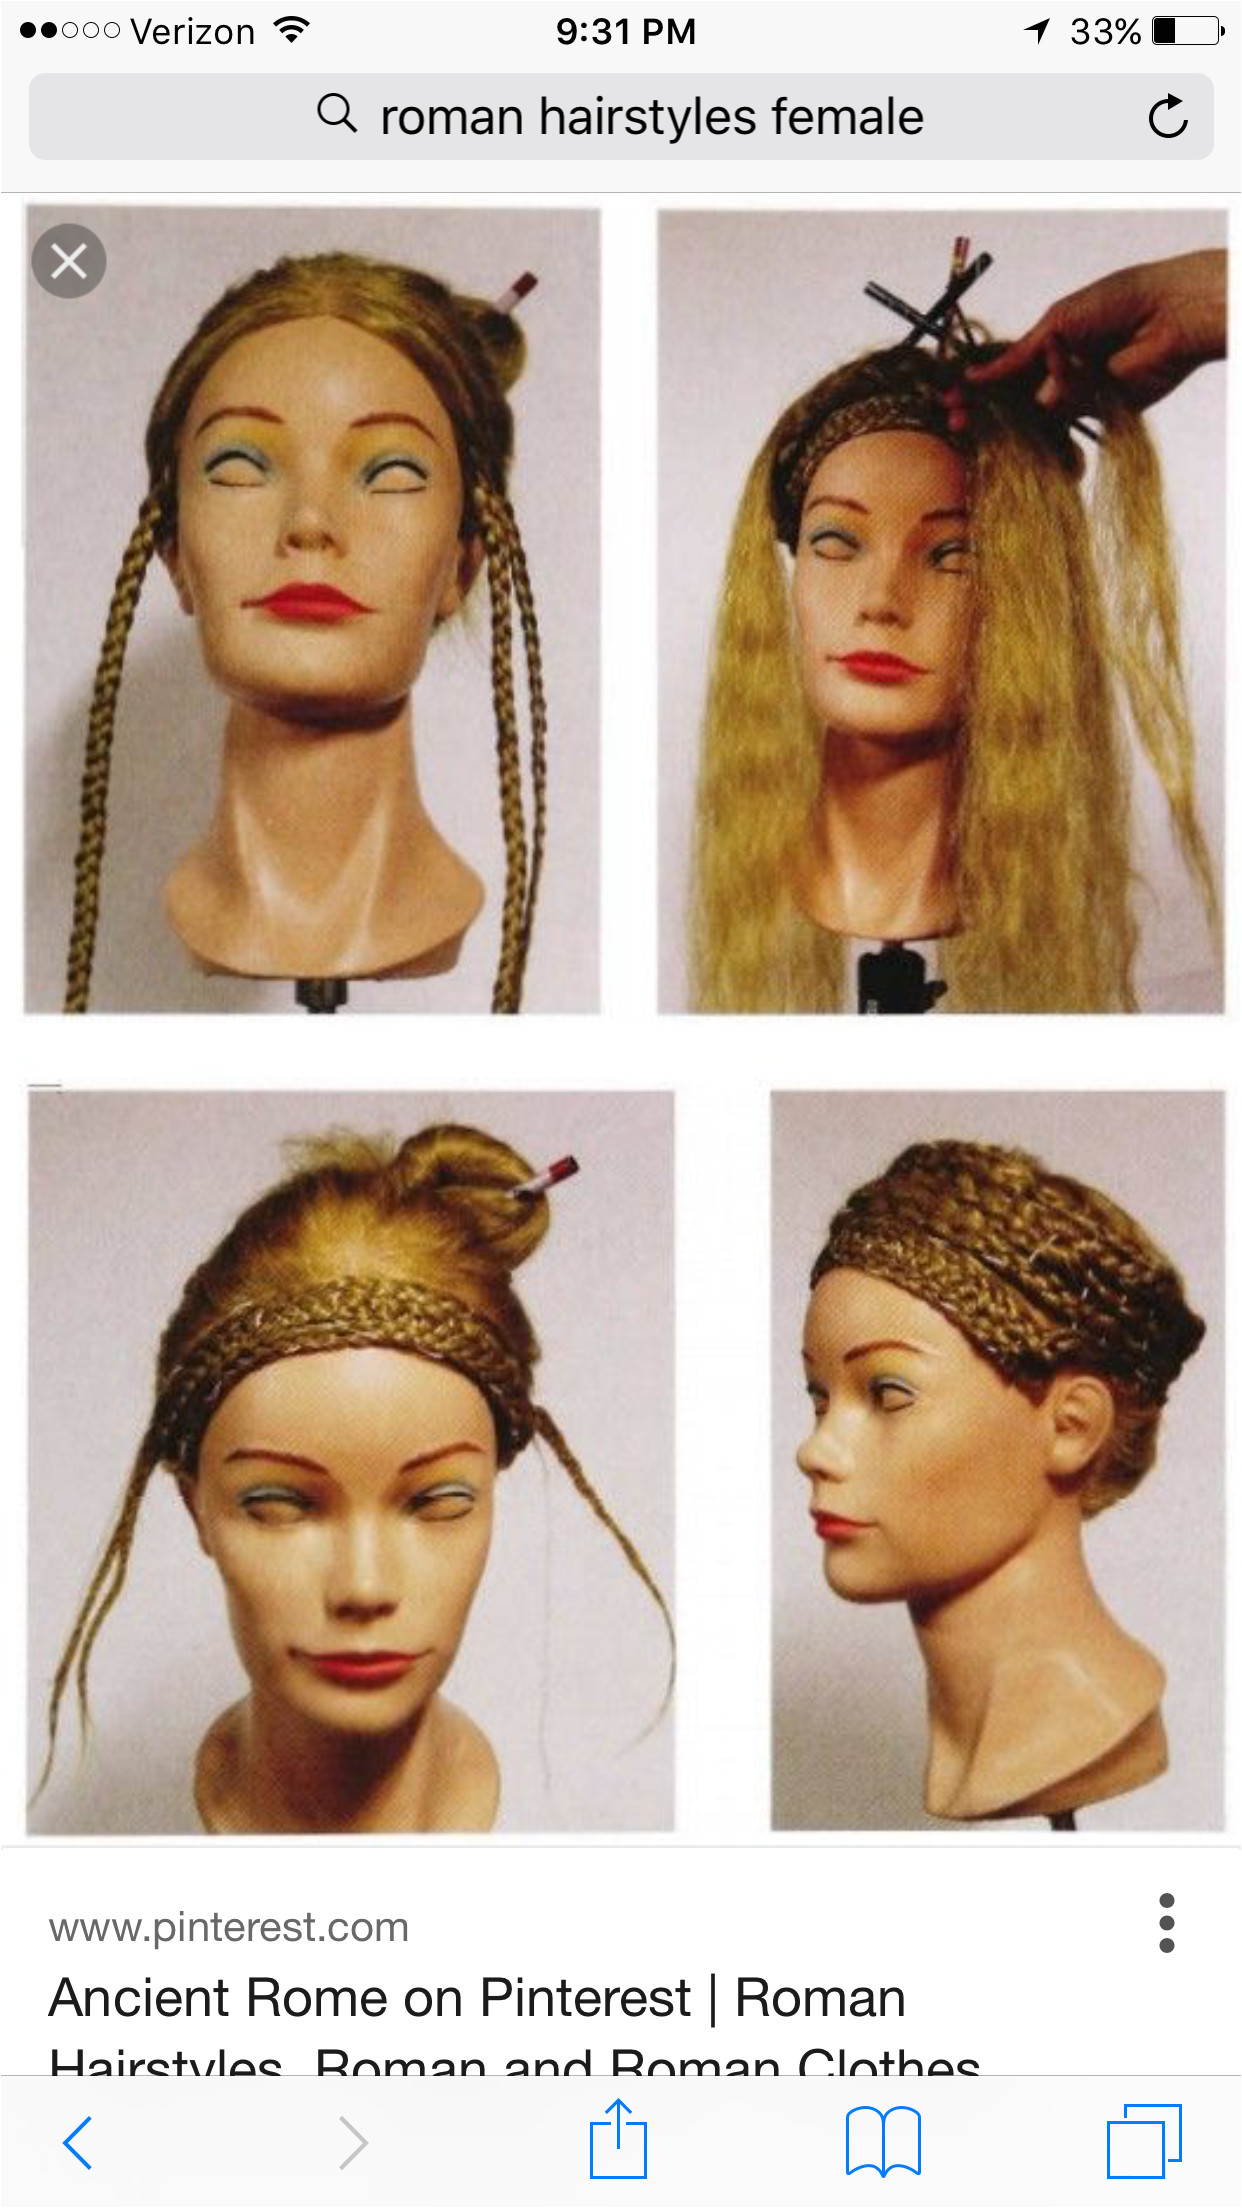 Egyptian Hairstyles Roman Hairstyles Me val Hairstyles Historical Hairstyles Modern Hairstyles Vintage